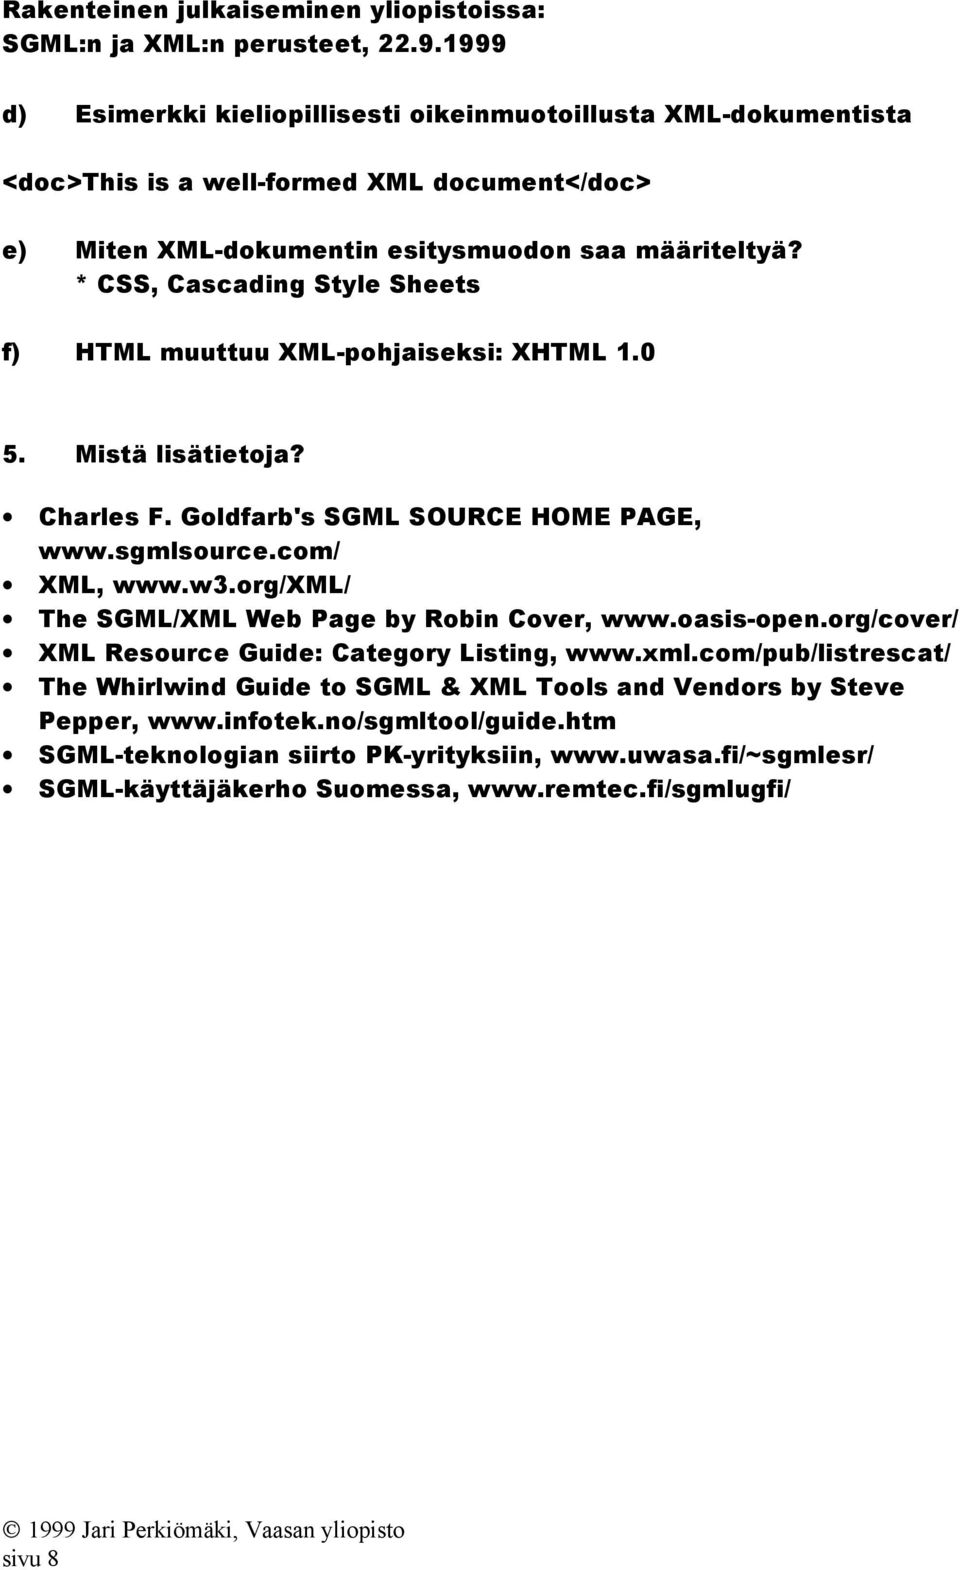 org/xml/ The SGML/XML Web Page by Robin Cover, www.oasis-open.org/cover/ XML Resource Guide: Category Listing, www.xml.com/pub/listrescat/ The Whirlwind Guide to SGML & XML Tools and Vendors by Steve Pepper, www.